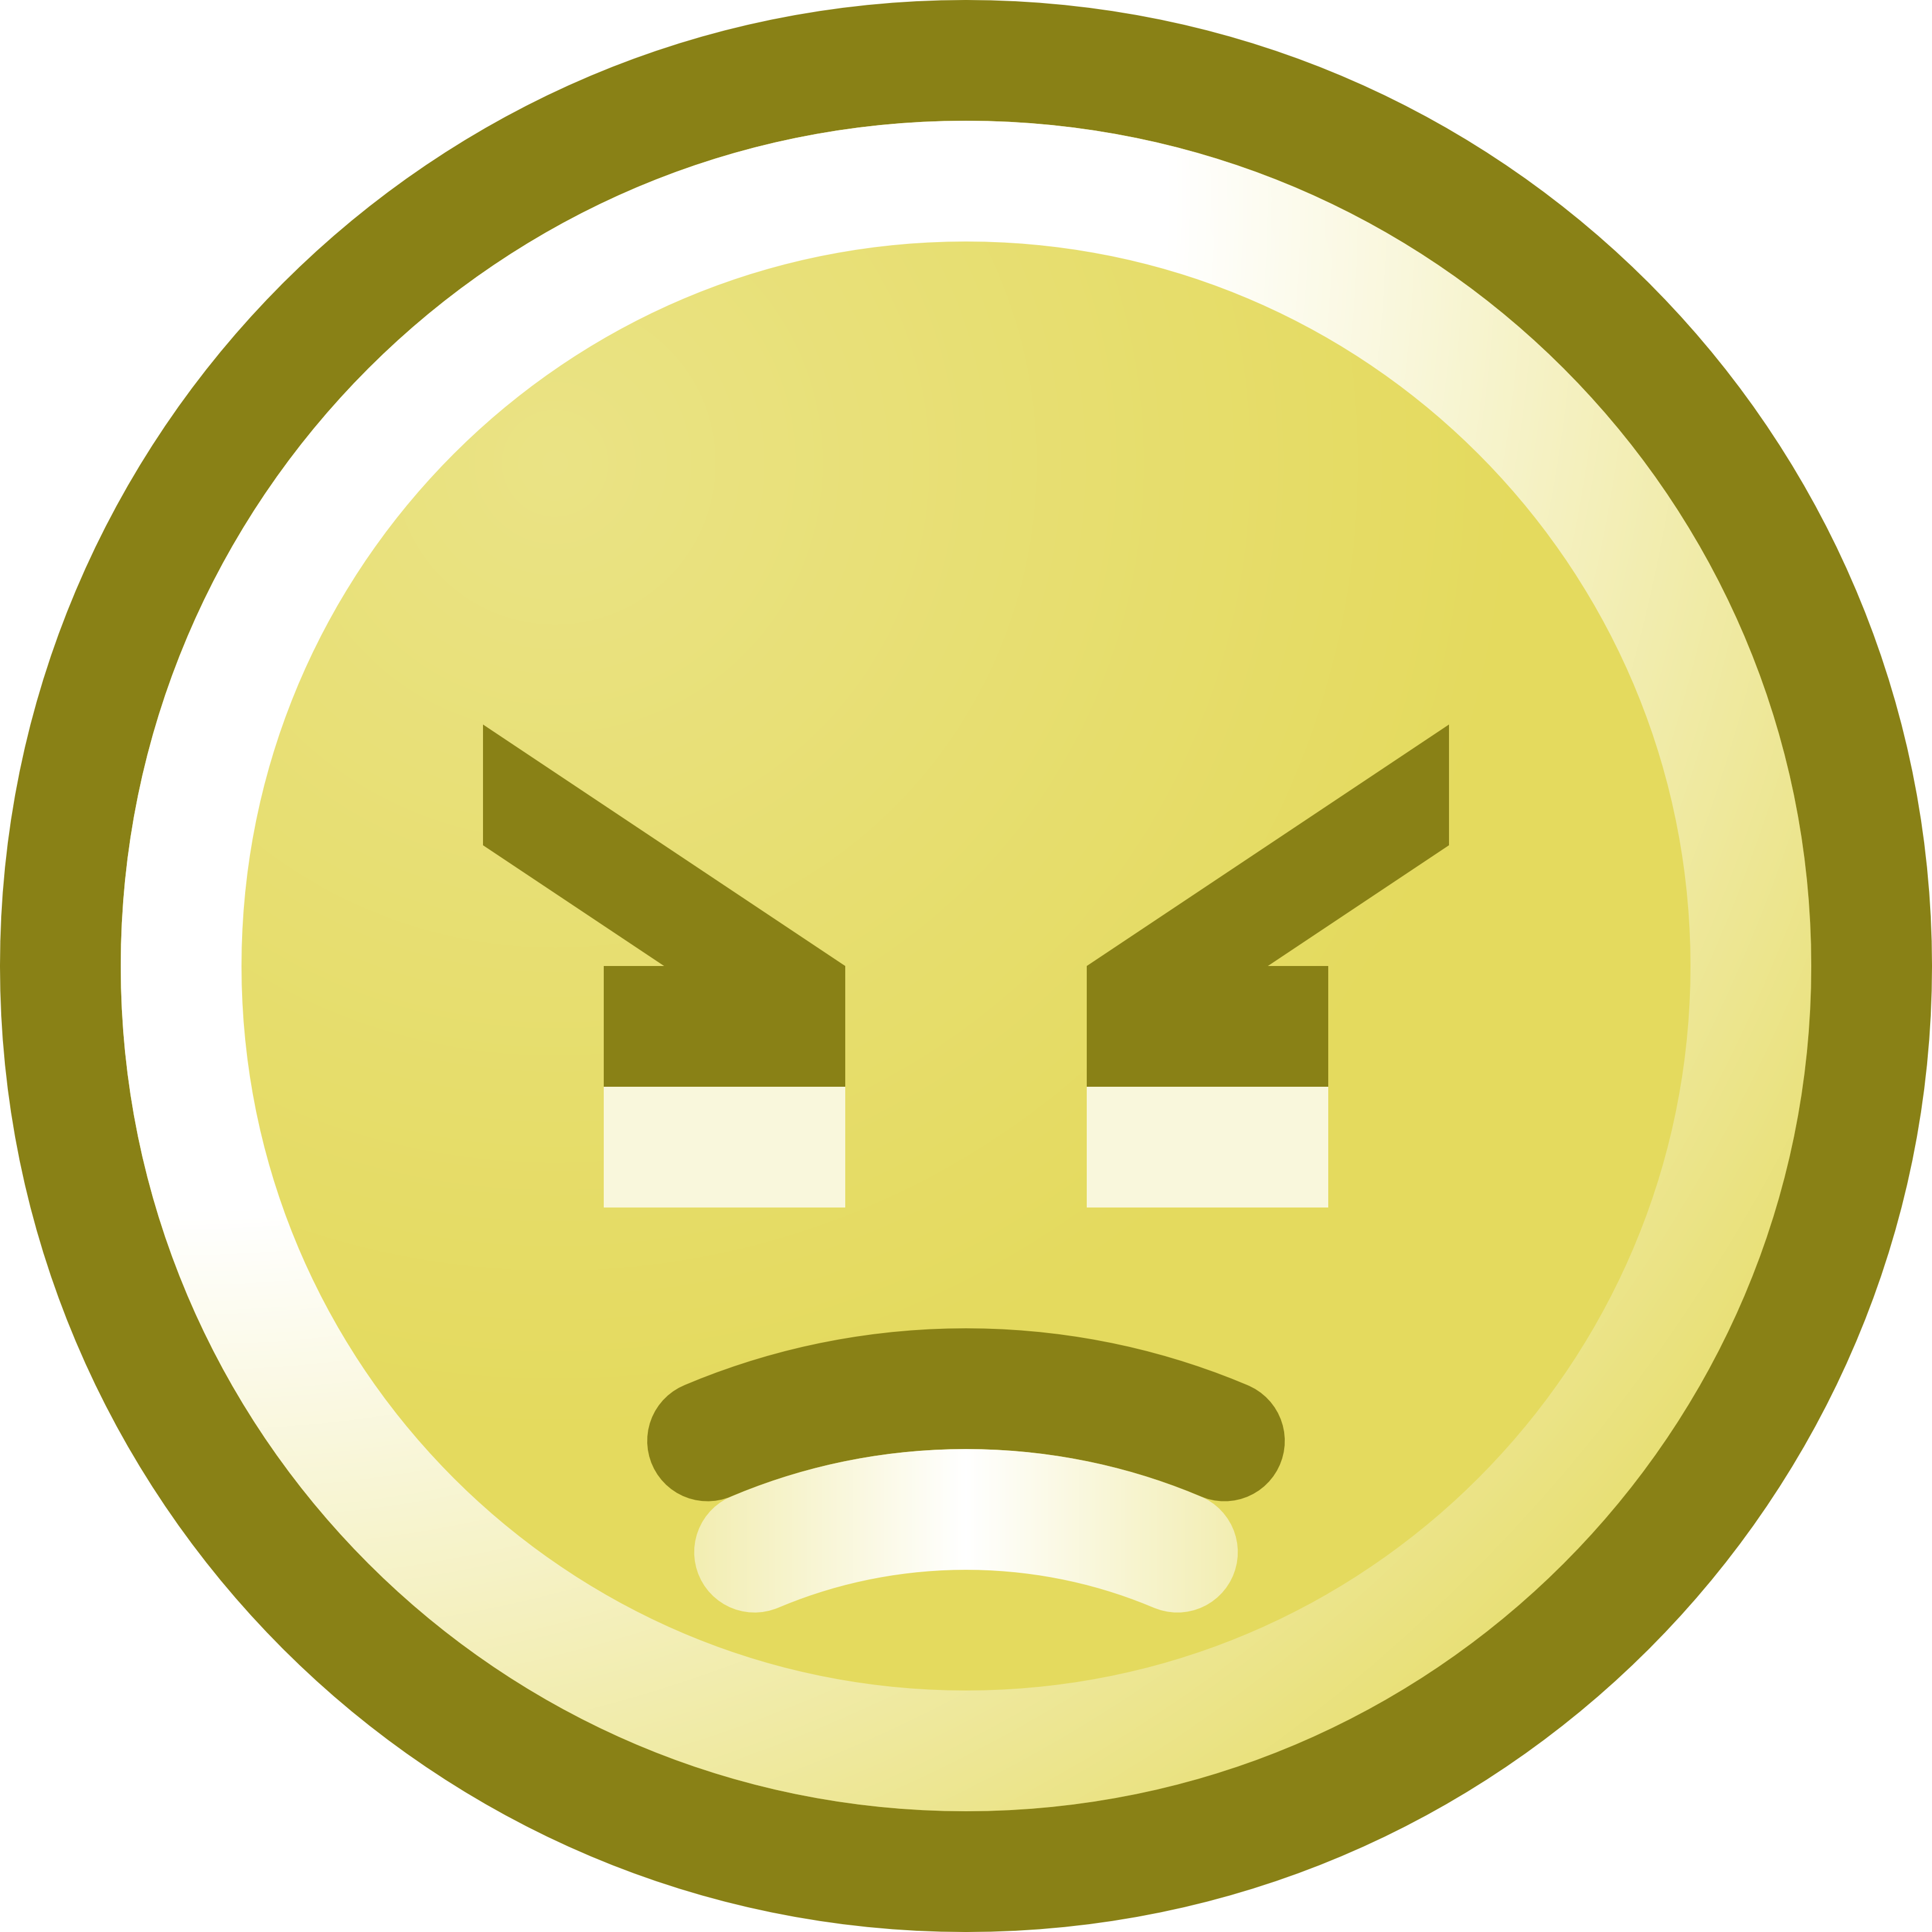 3200x3200 Clip Art Angry Mean Smiley Clipart 2152904